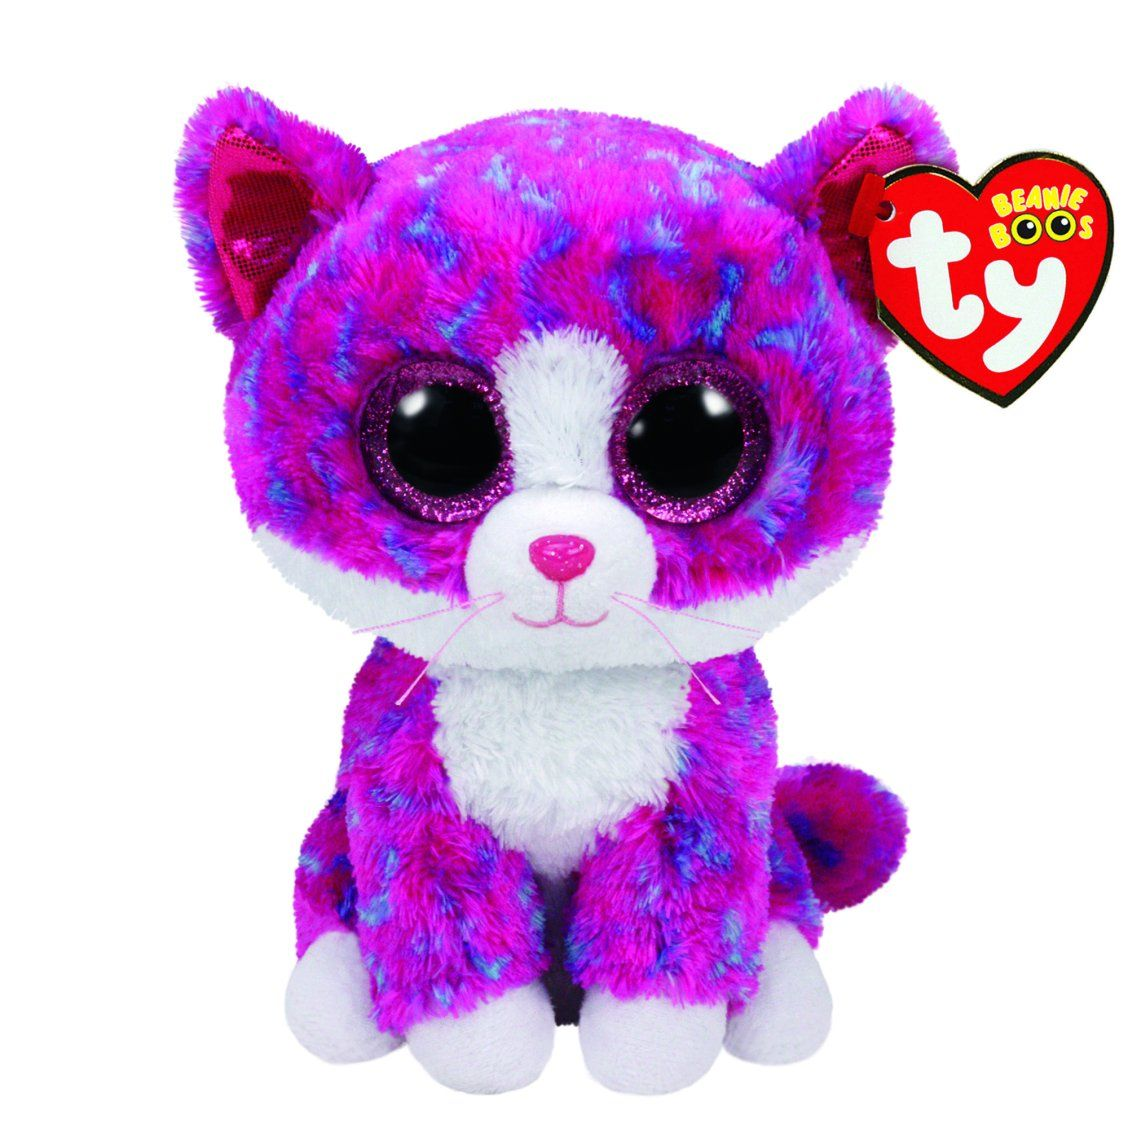 TY Beanie Boos Medium Charlotte The Cat Plush Toy  eaacc184528b